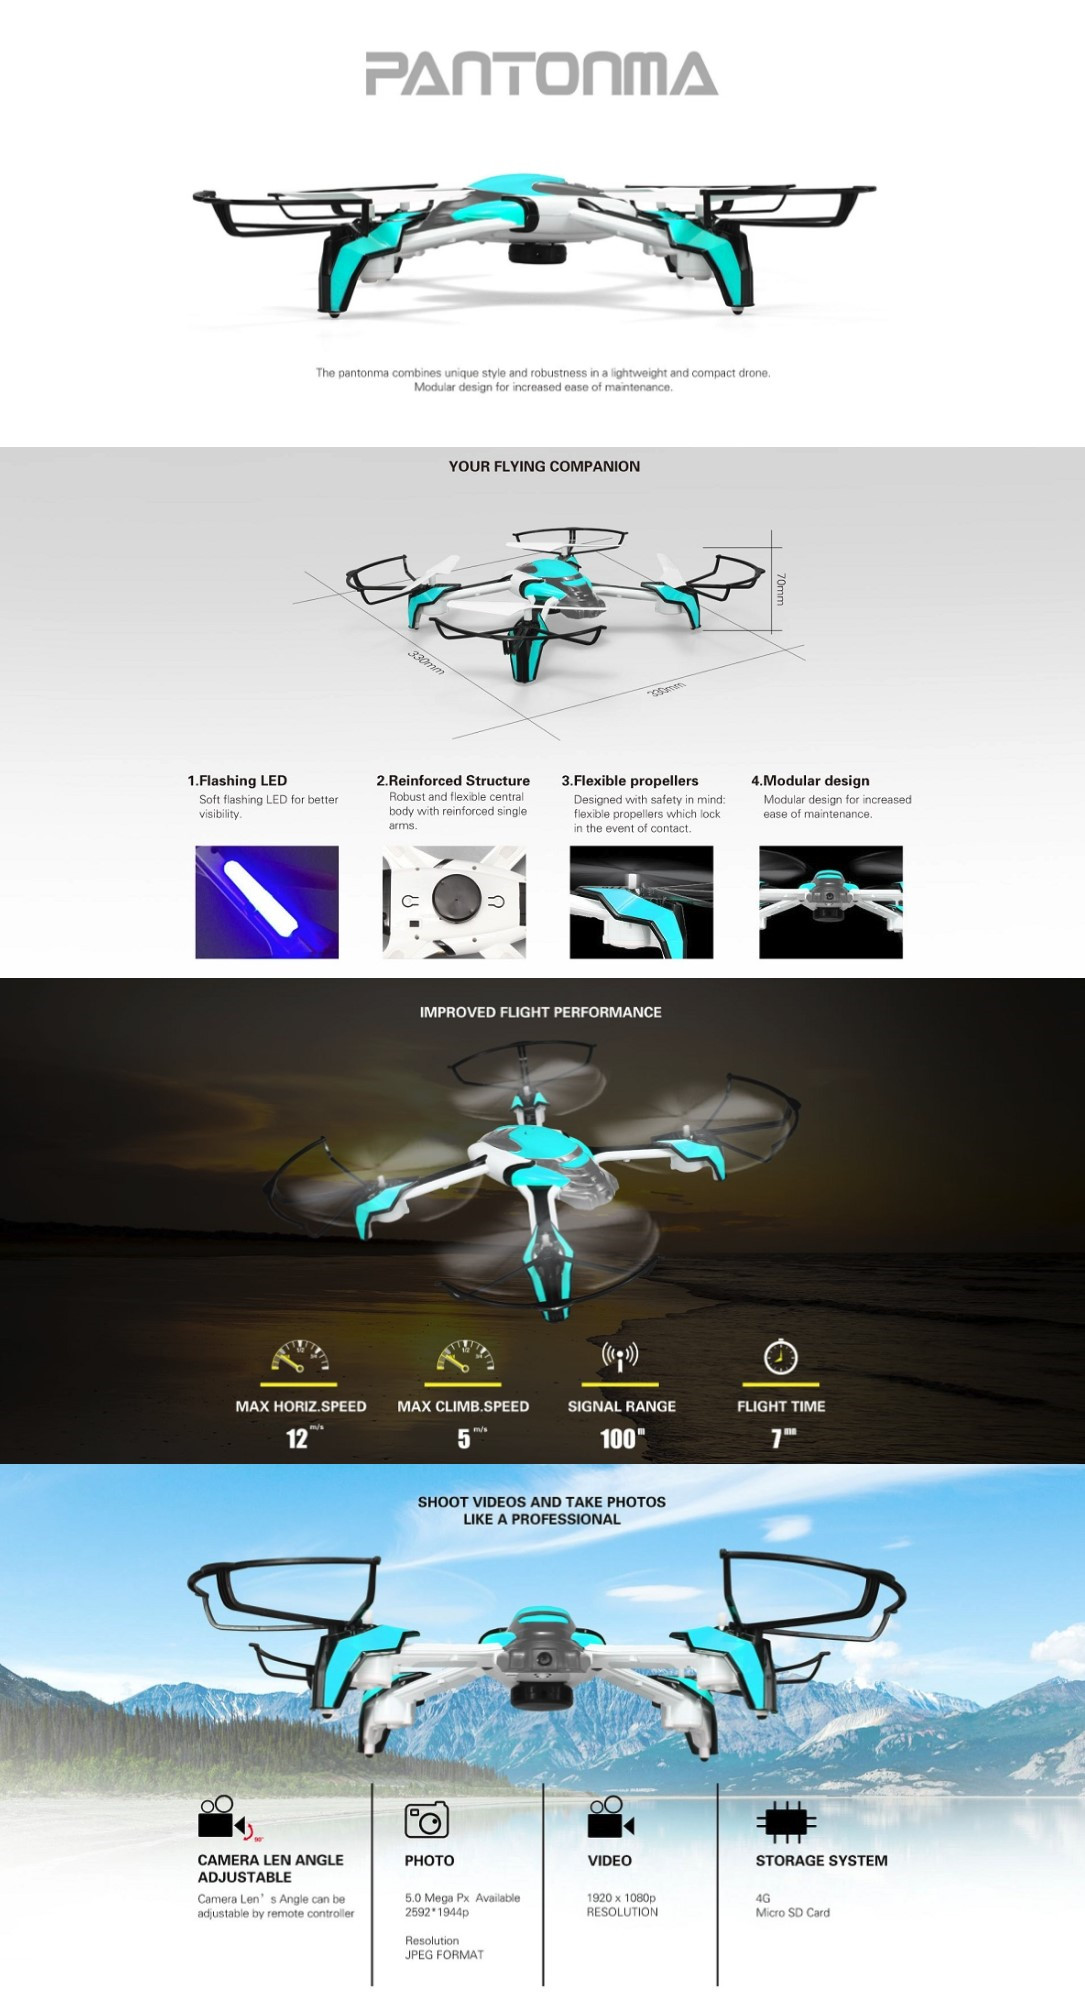 KD Kai Deng K80 Pantonma WIFI FPV With 2MP Camera Anti-collision Induction RC Quadcopter RTF